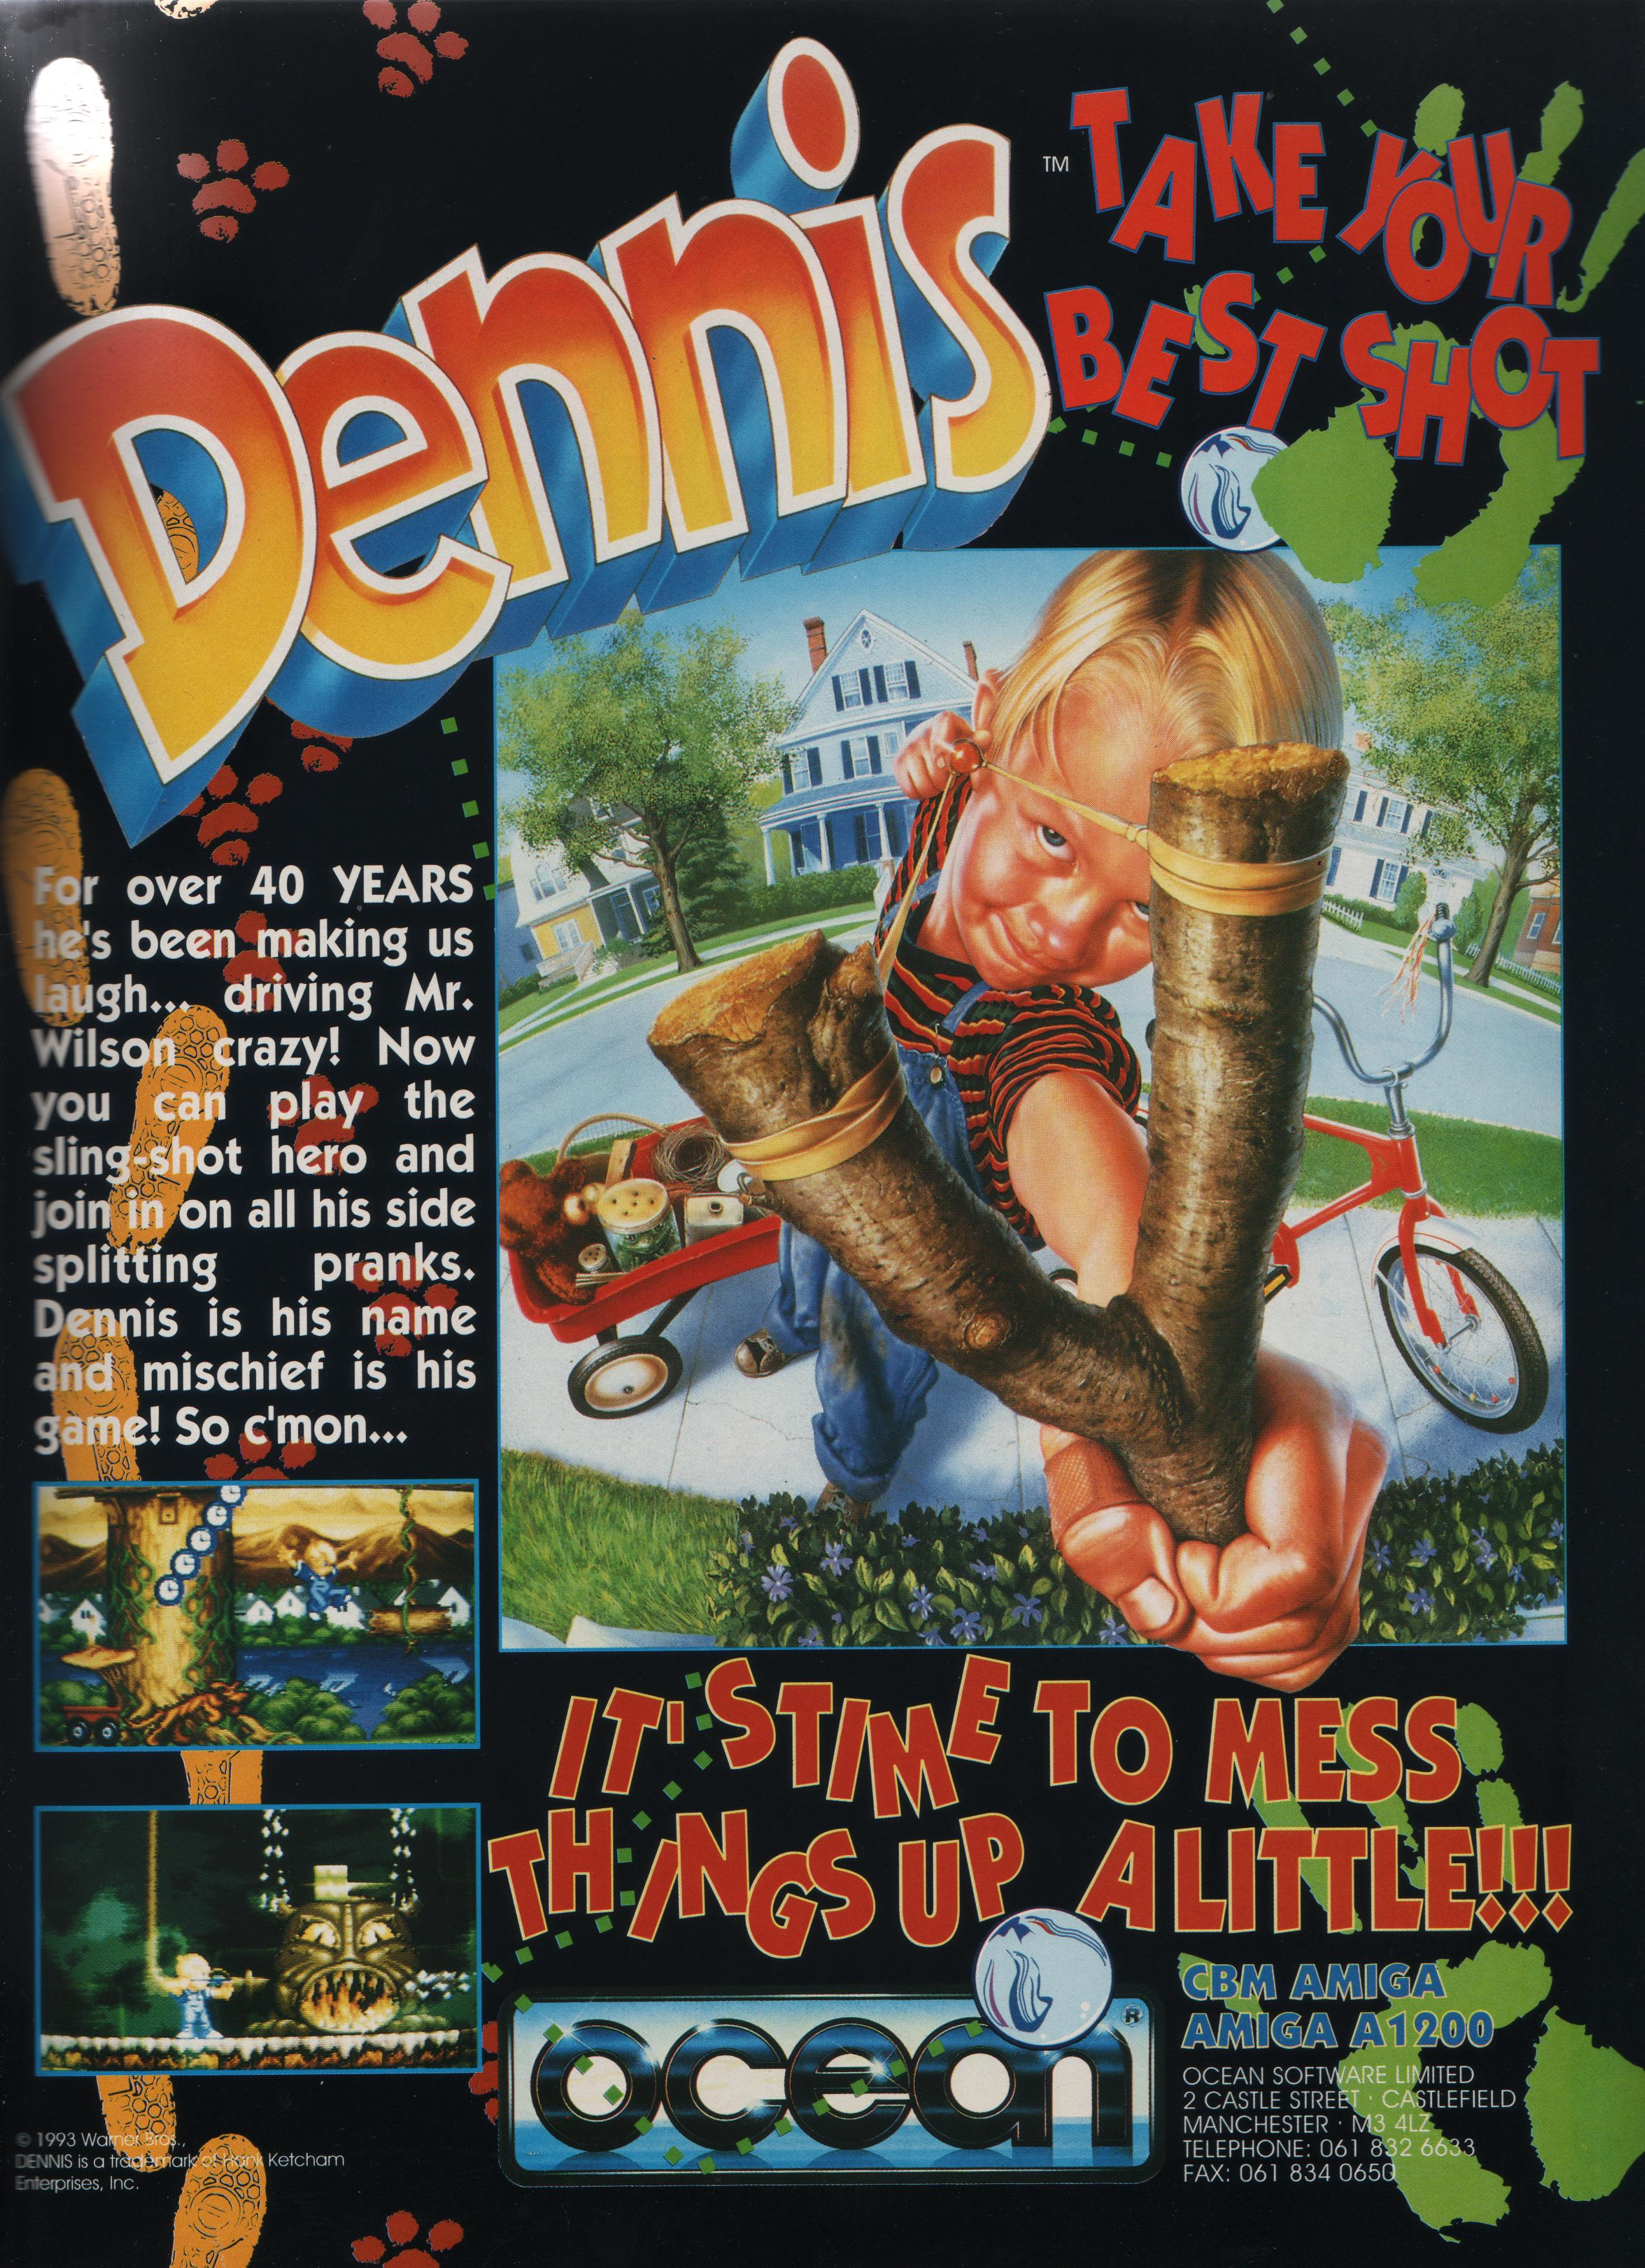 The 1994 Ocean software game Dennis for the Amiga A1200 advert